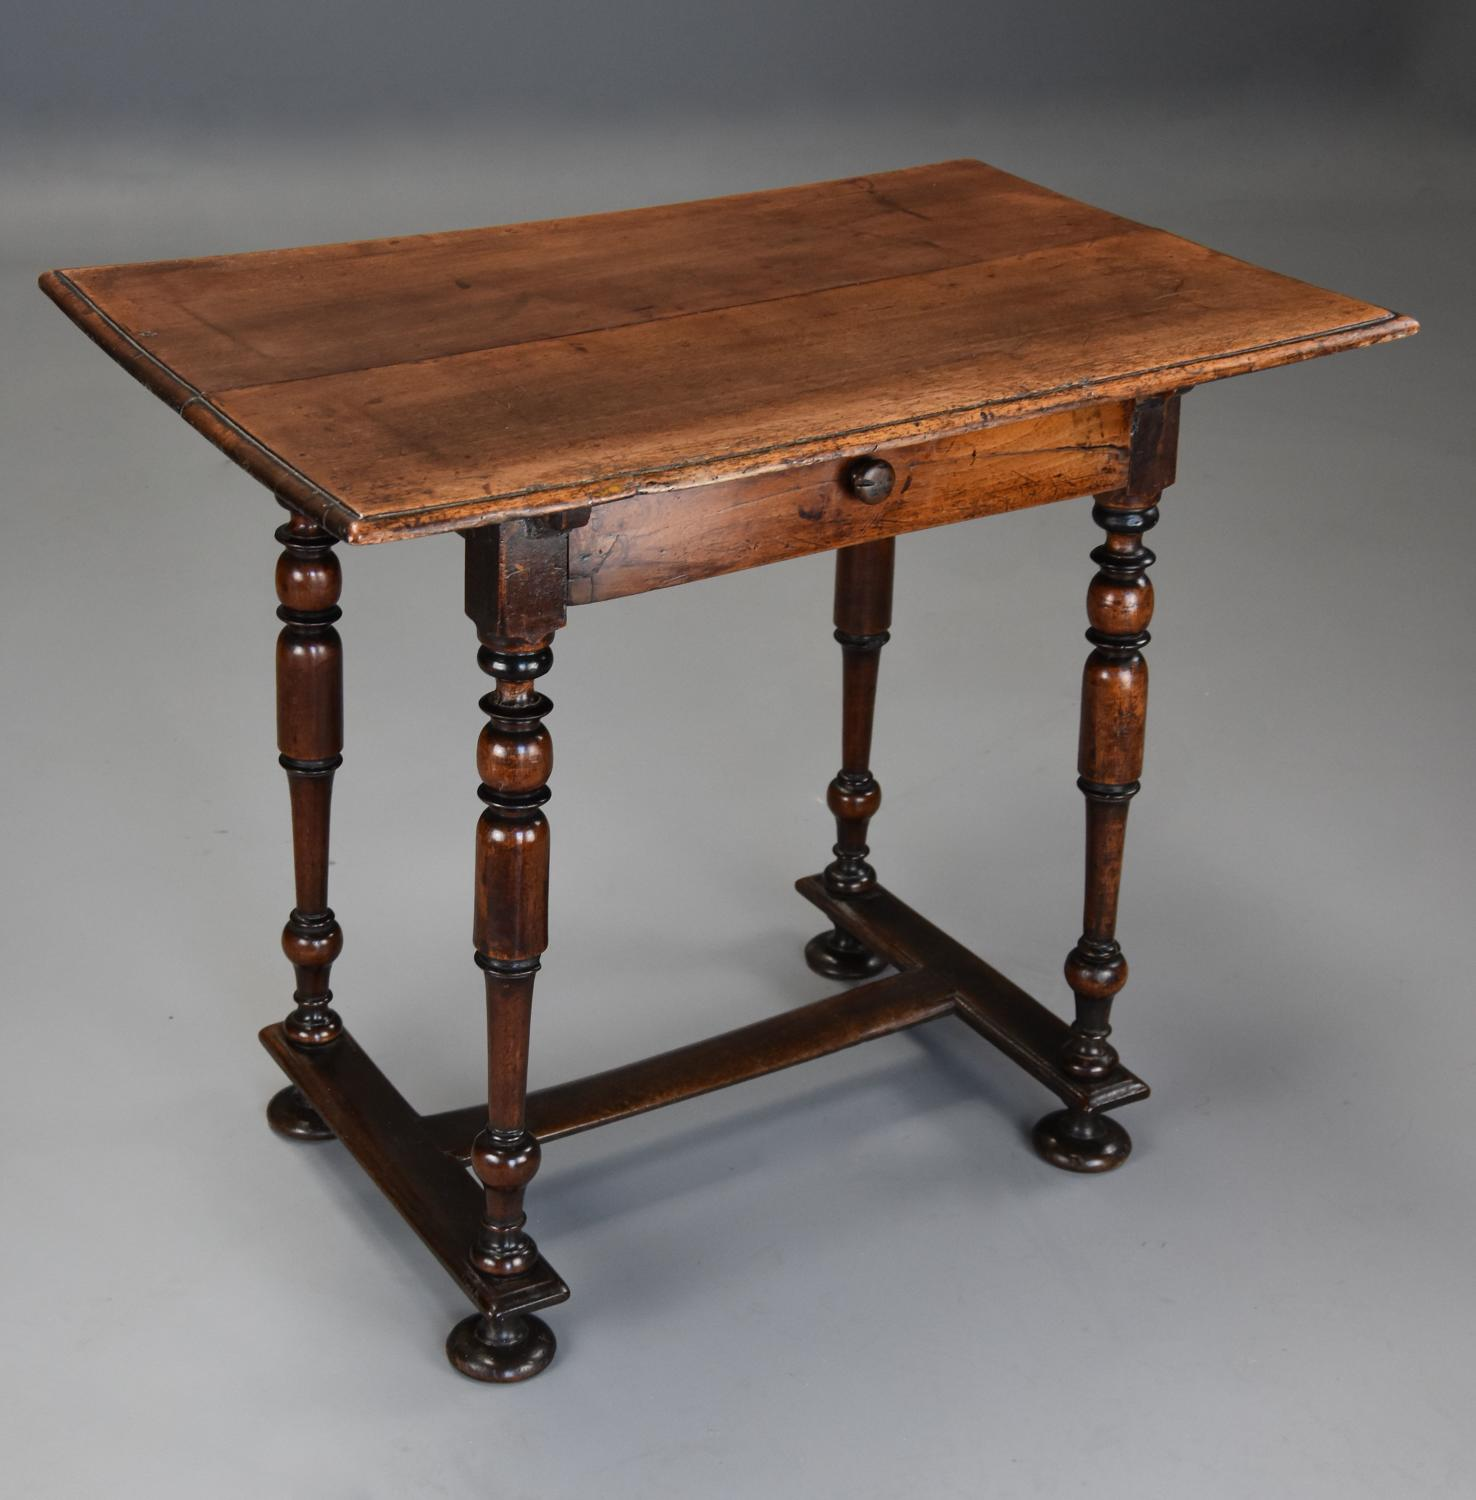 17thc Continental walnut side table with drawer of superb patina